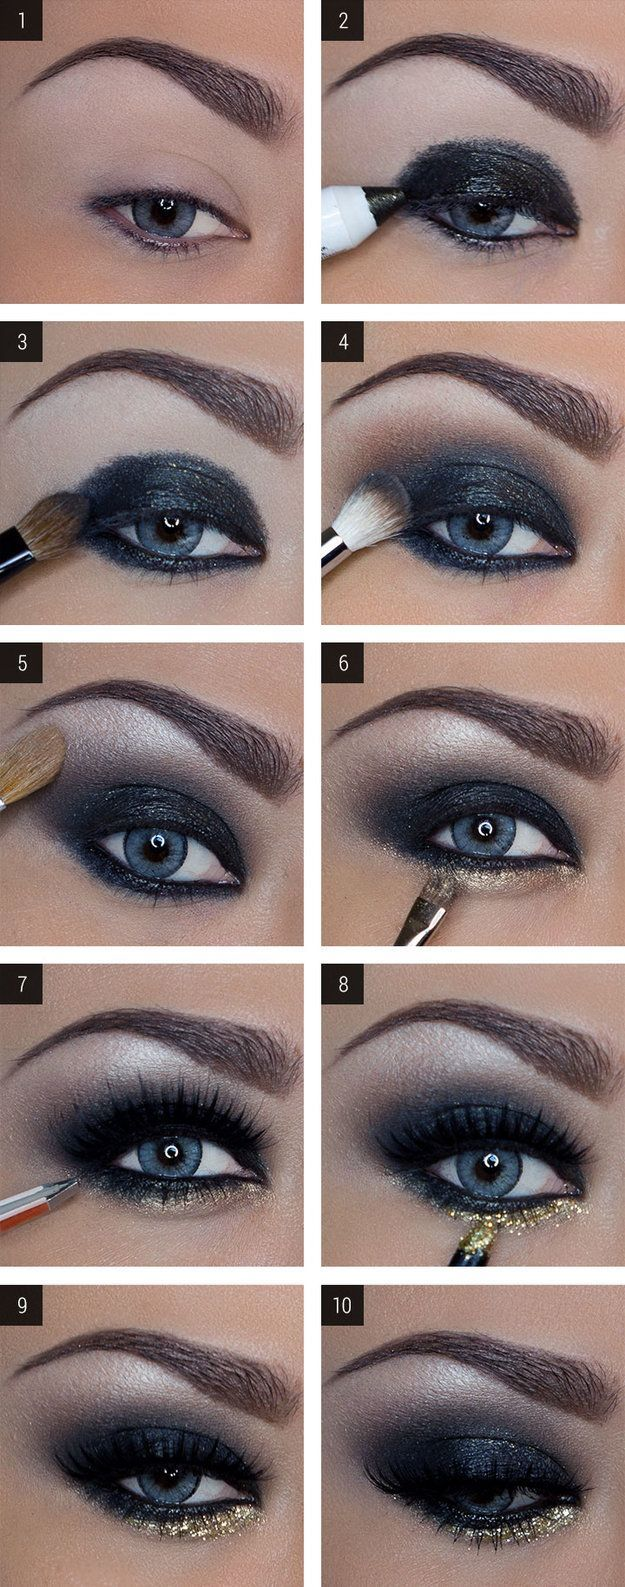 How to Do Dramatic Smokey Eyes | Makeup for Blue Eye by Makeup Tutorials at www.makeuptutoria... Beauty & Personal Care - Makeup : Eyes - Eyeshadow - Makeup - http://amzn.to/2jRlRZU